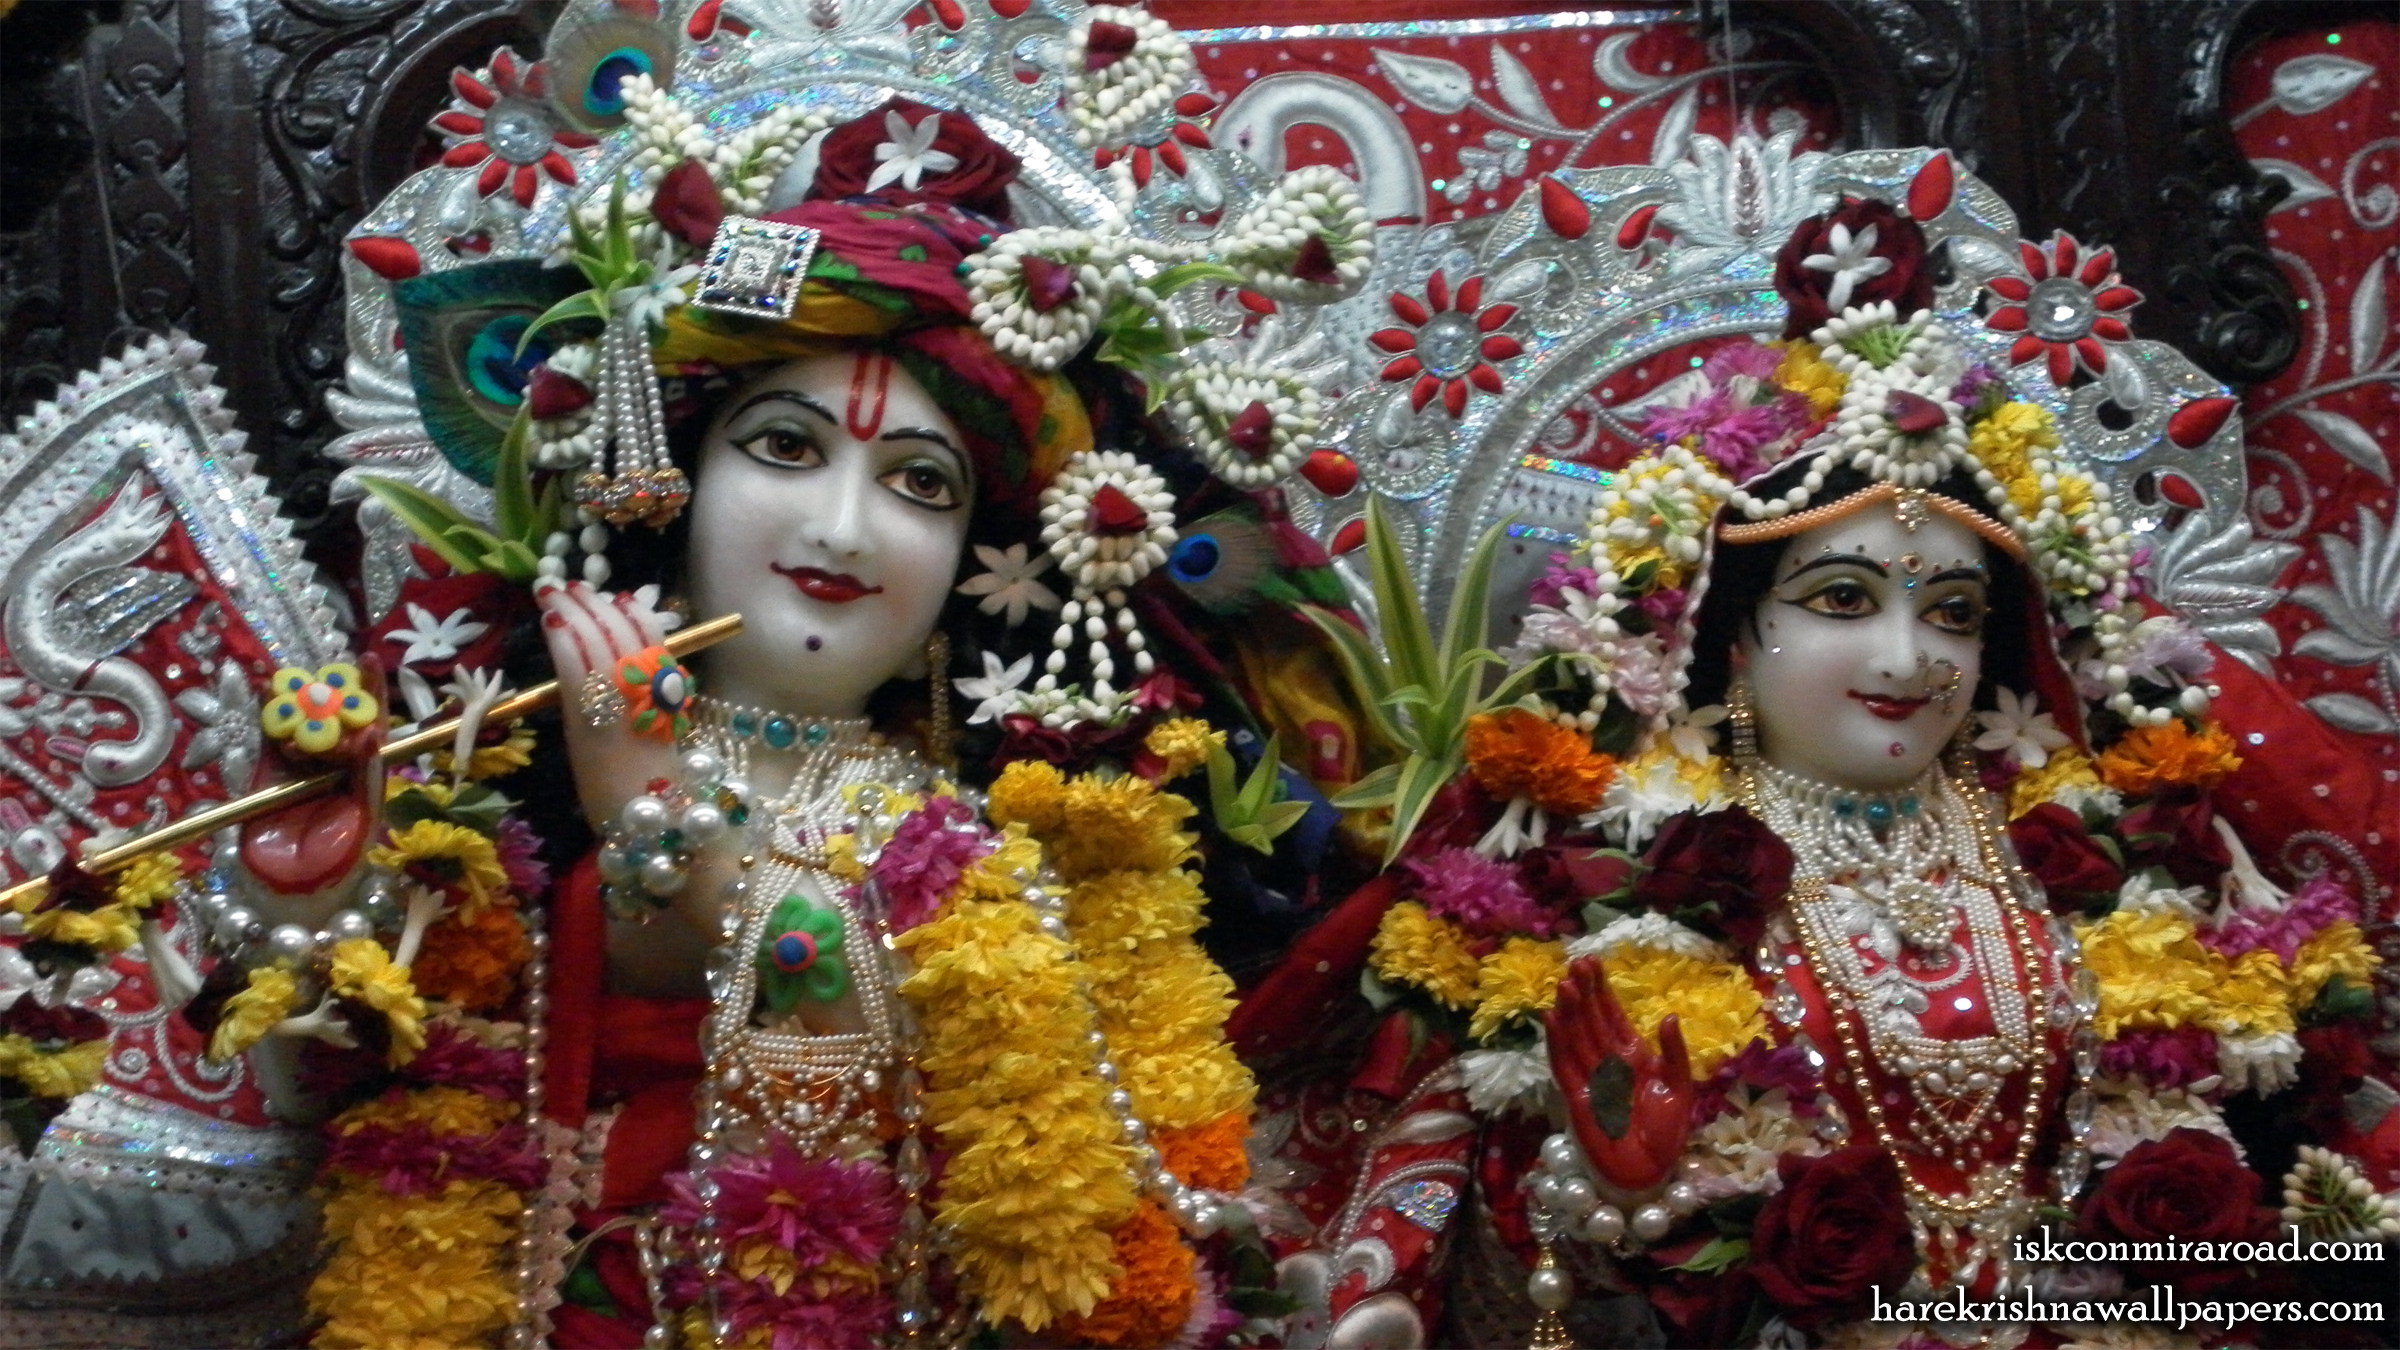 Sri Sri Radha Giridhari Close up Wallpaper (022) Size 2400x1350 Download